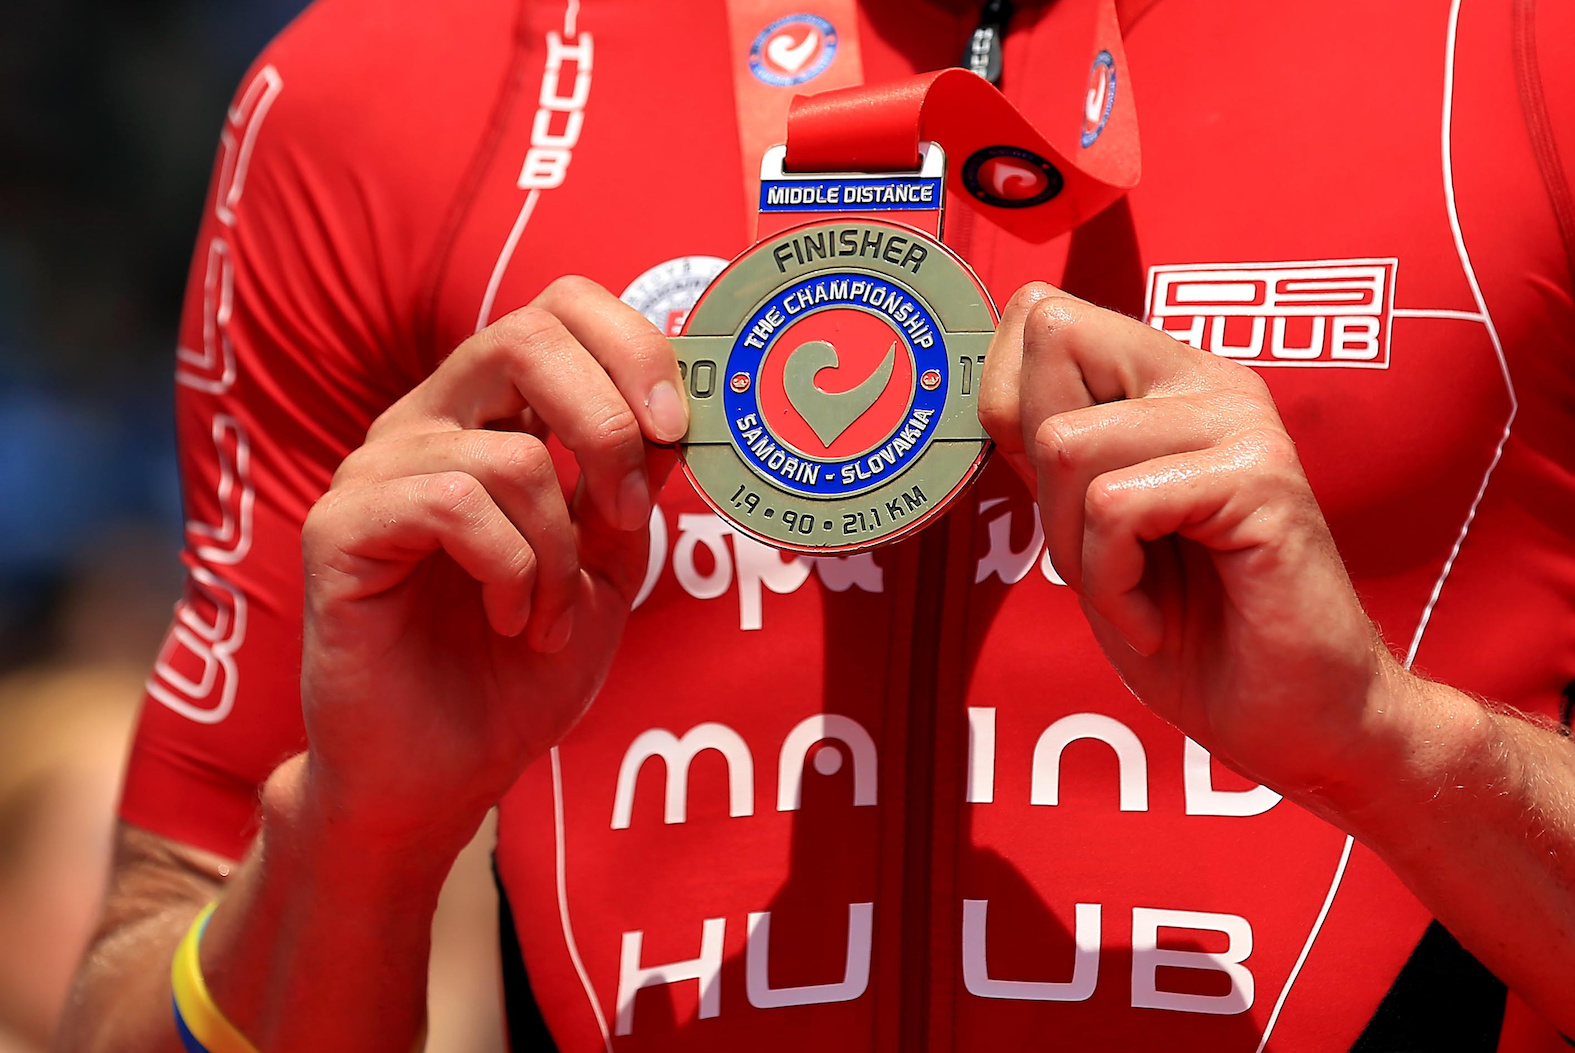 BRATISLAVA, SLOVAKIA - JUNE 3:  Richard Varga of Slovakia poses with his finishers medal after The Championship Challenge Triathlon on June 3, 2017 in Bratislava, Slovakia. (Photo by Stephen Pond/Getty Images for Challenge Triathlon) *** Local Caption *** Richard Varga